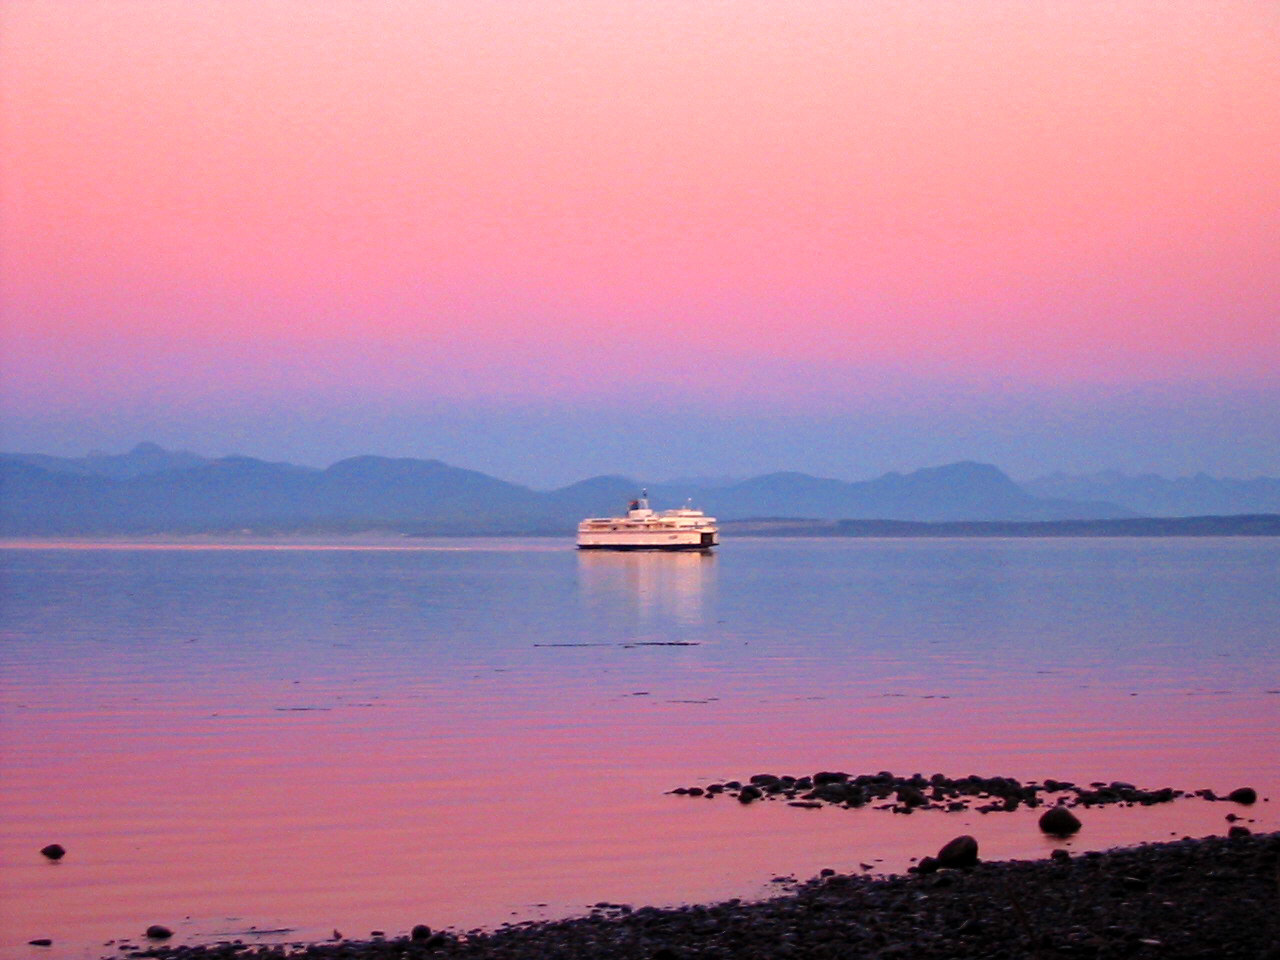 ferry arrives at sunset